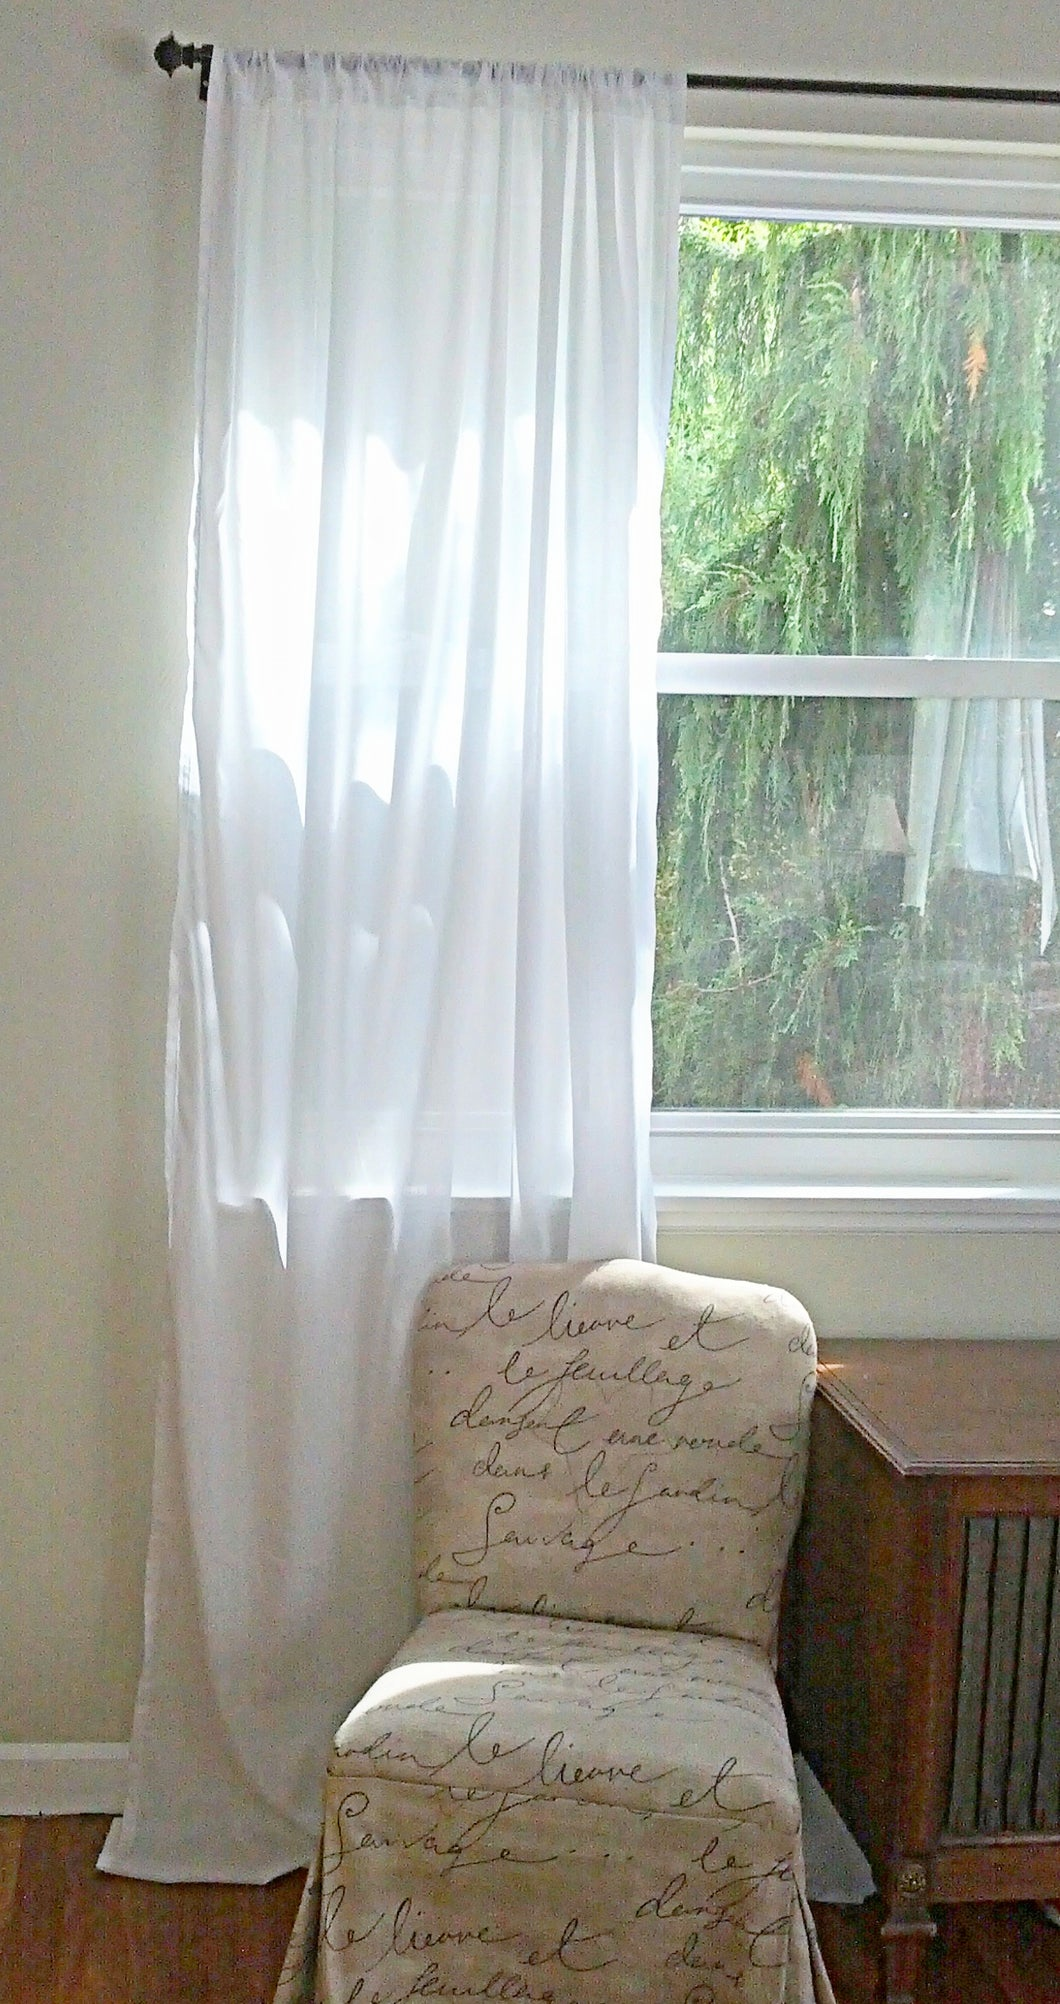 White Cotton Voile Sheer Curtain Panel Or Valance. Handmade